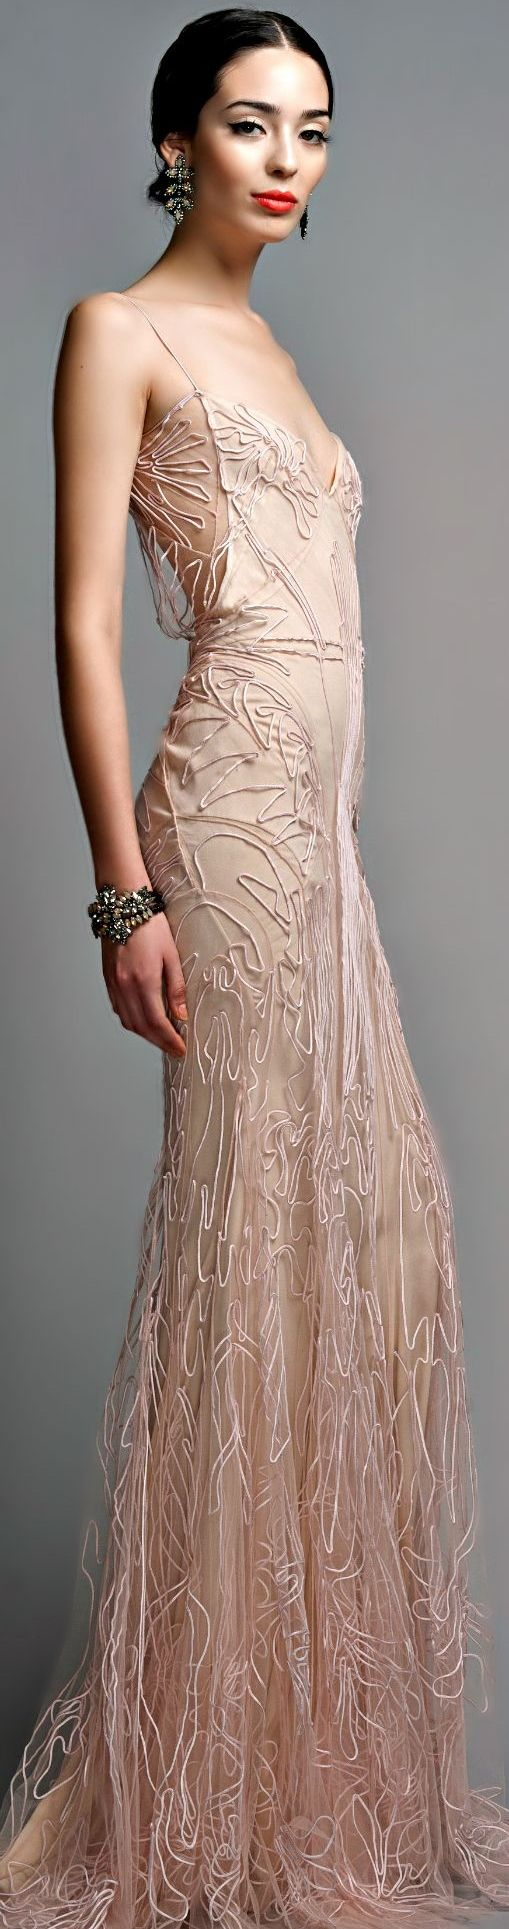 Zac Posen. More pins of beautiful night gowns: https://www.pinterest.com/amandaalexandre/night-gowns/